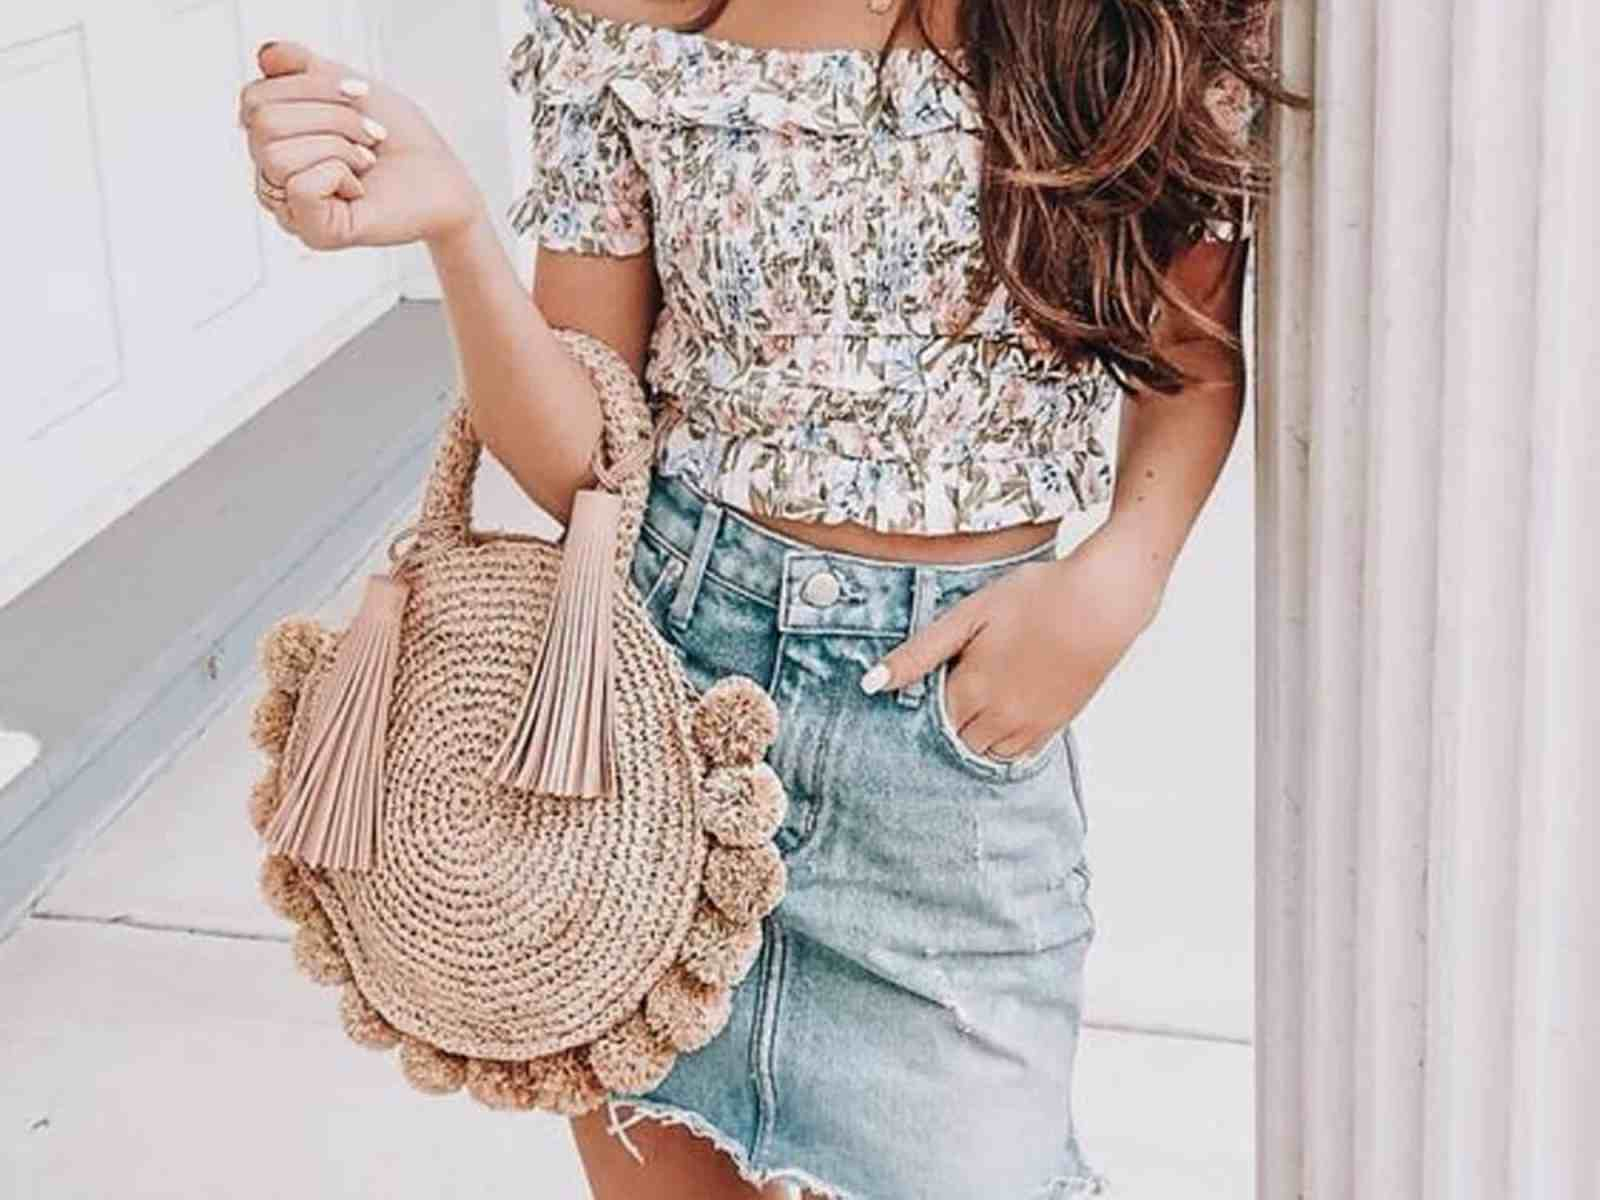 These cute denim skirt outfits are everything you need for the summer of 2018. The skirt styles range from black, white, long, short, pencil, and more! Additionally, these outfits go with anything!